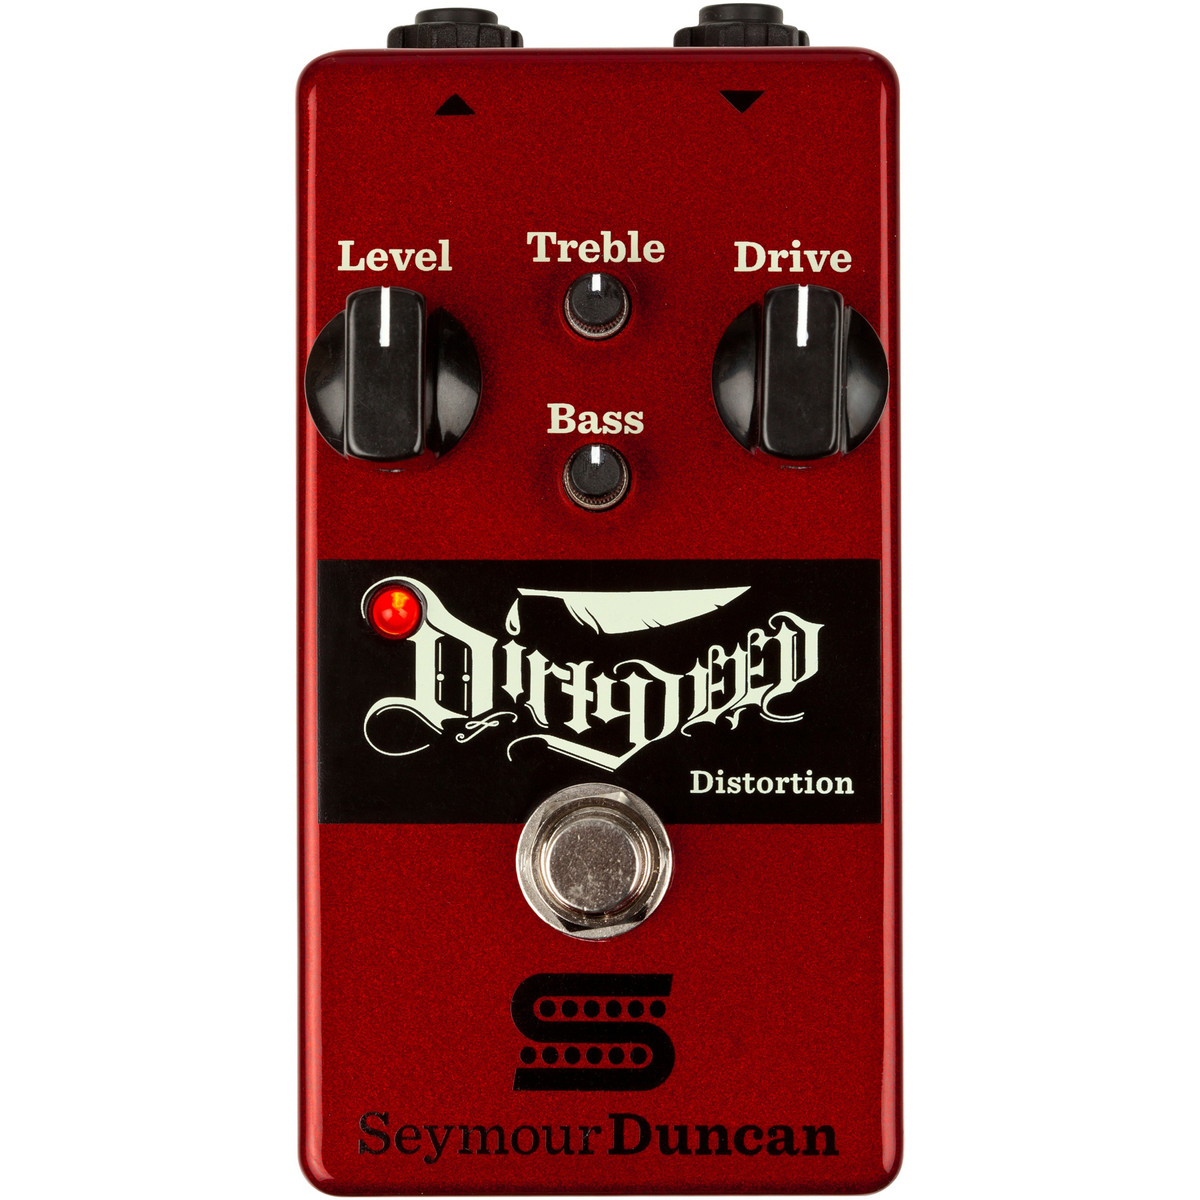 seymour duncan dirty deed distortion pedal at gear4music. Black Bedroom Furniture Sets. Home Design Ideas